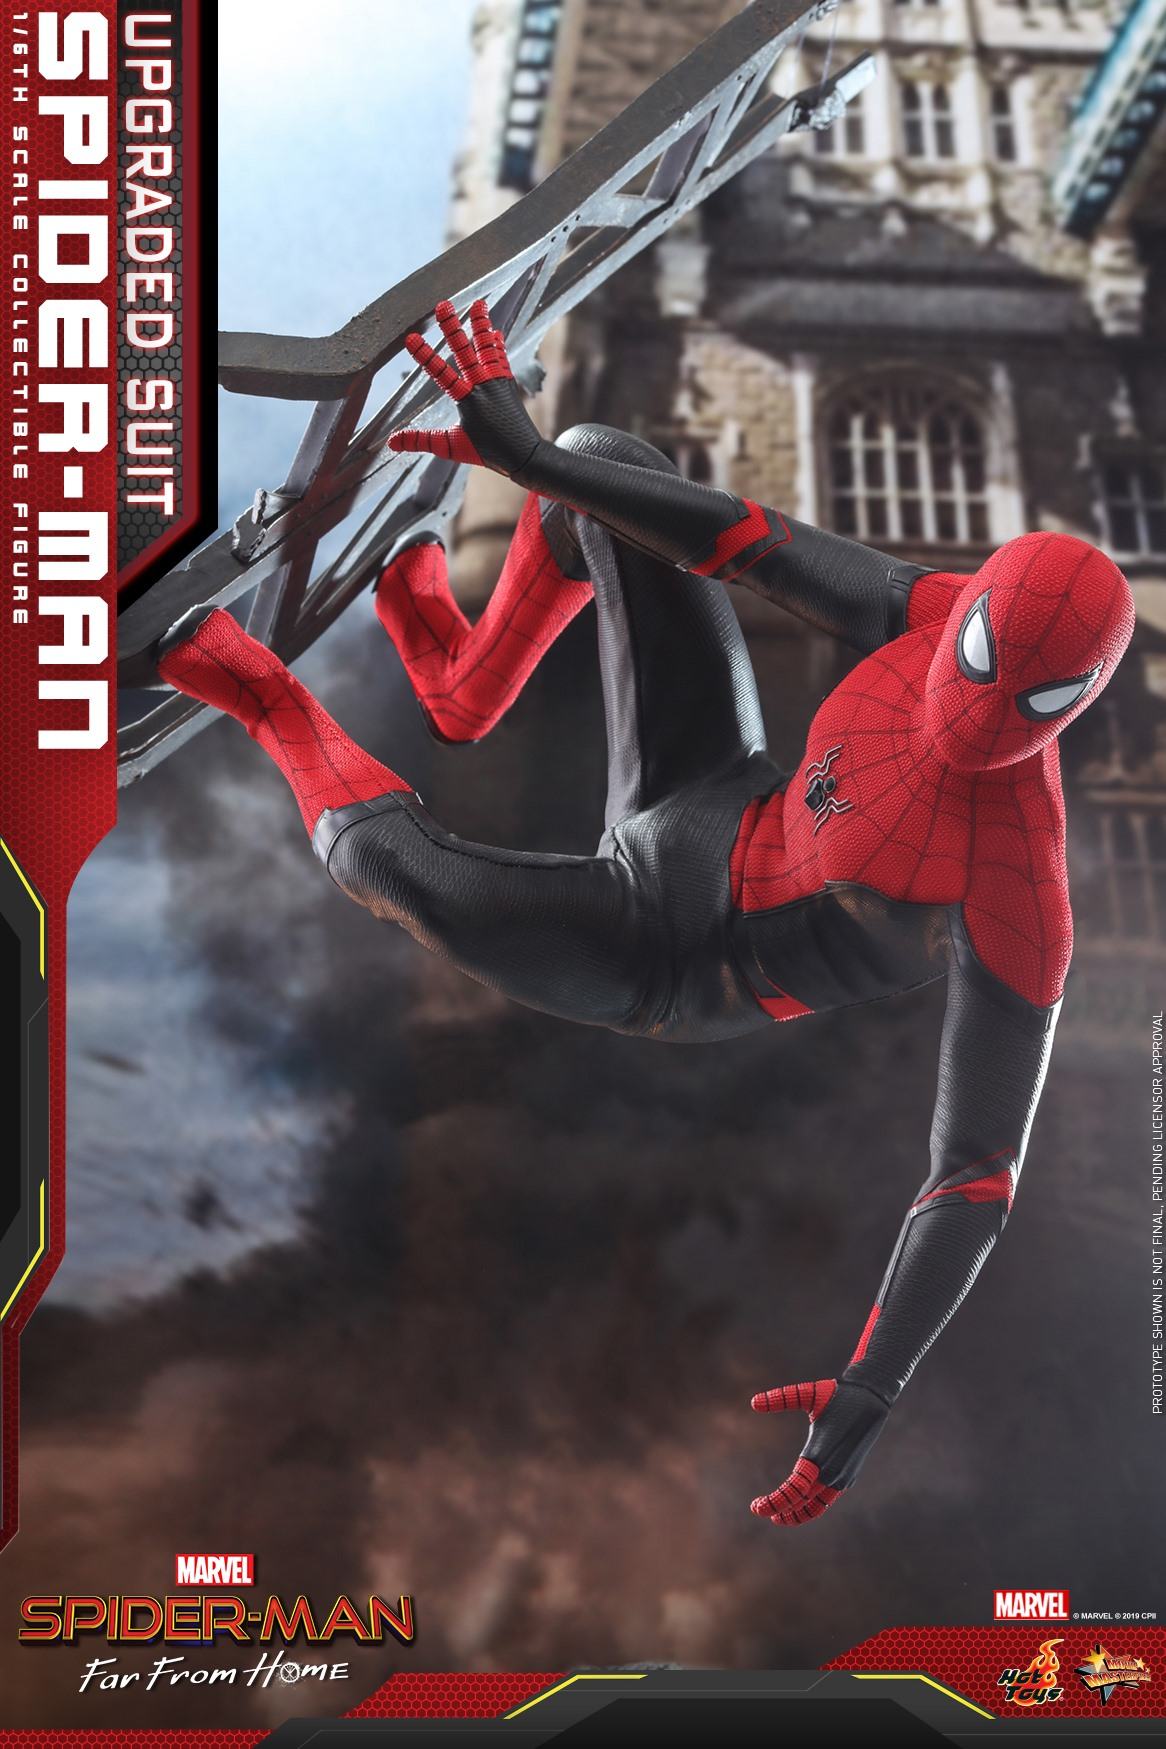 Hot Toys Upgraded Suit Spider Man Far From Home Figure Up